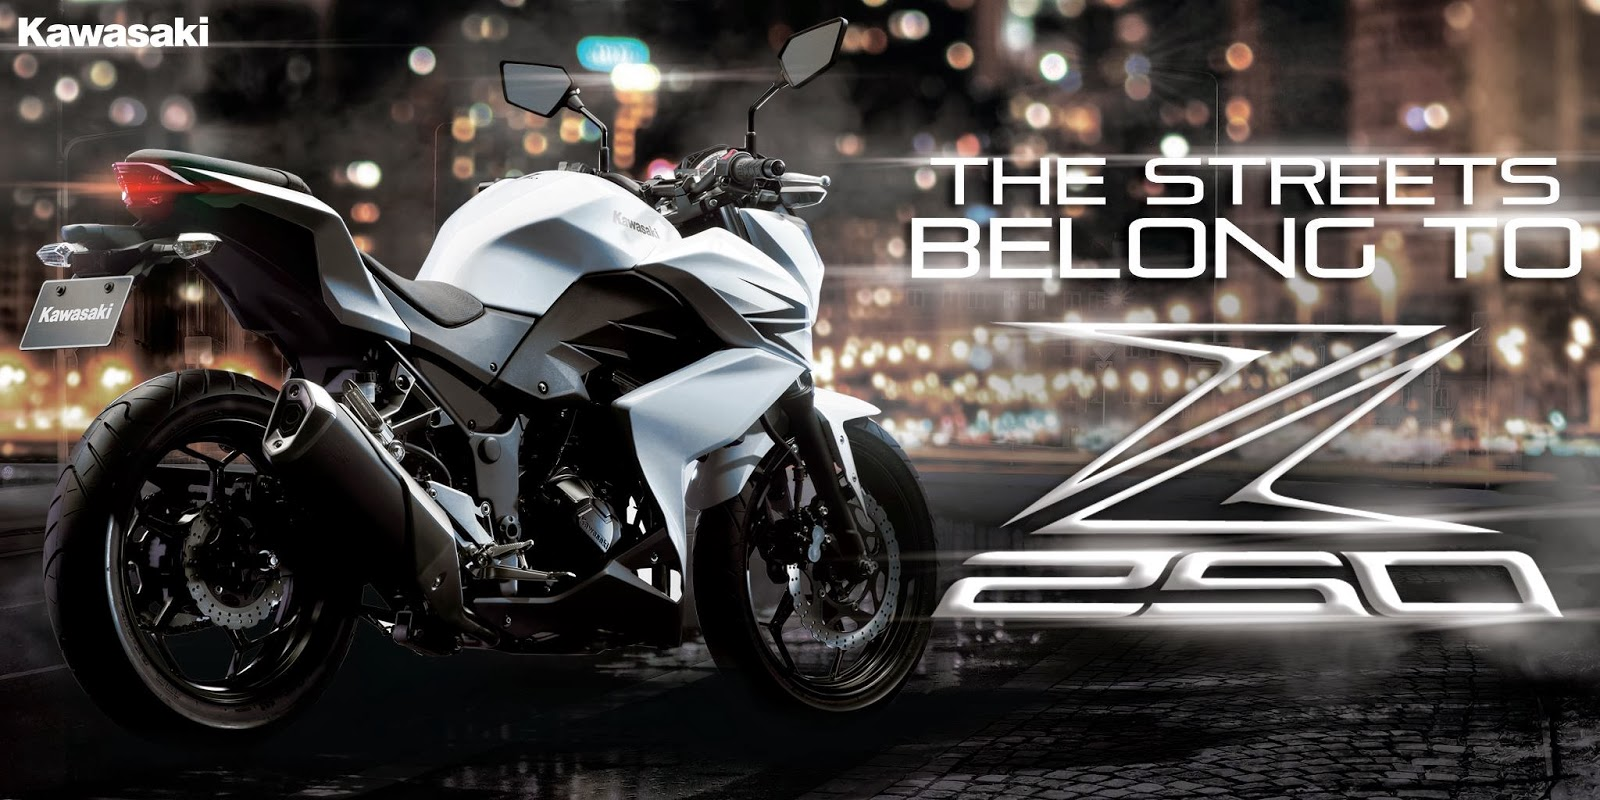 Z250 . Remarkably , Z250 into a global product with Indonesia as the title=